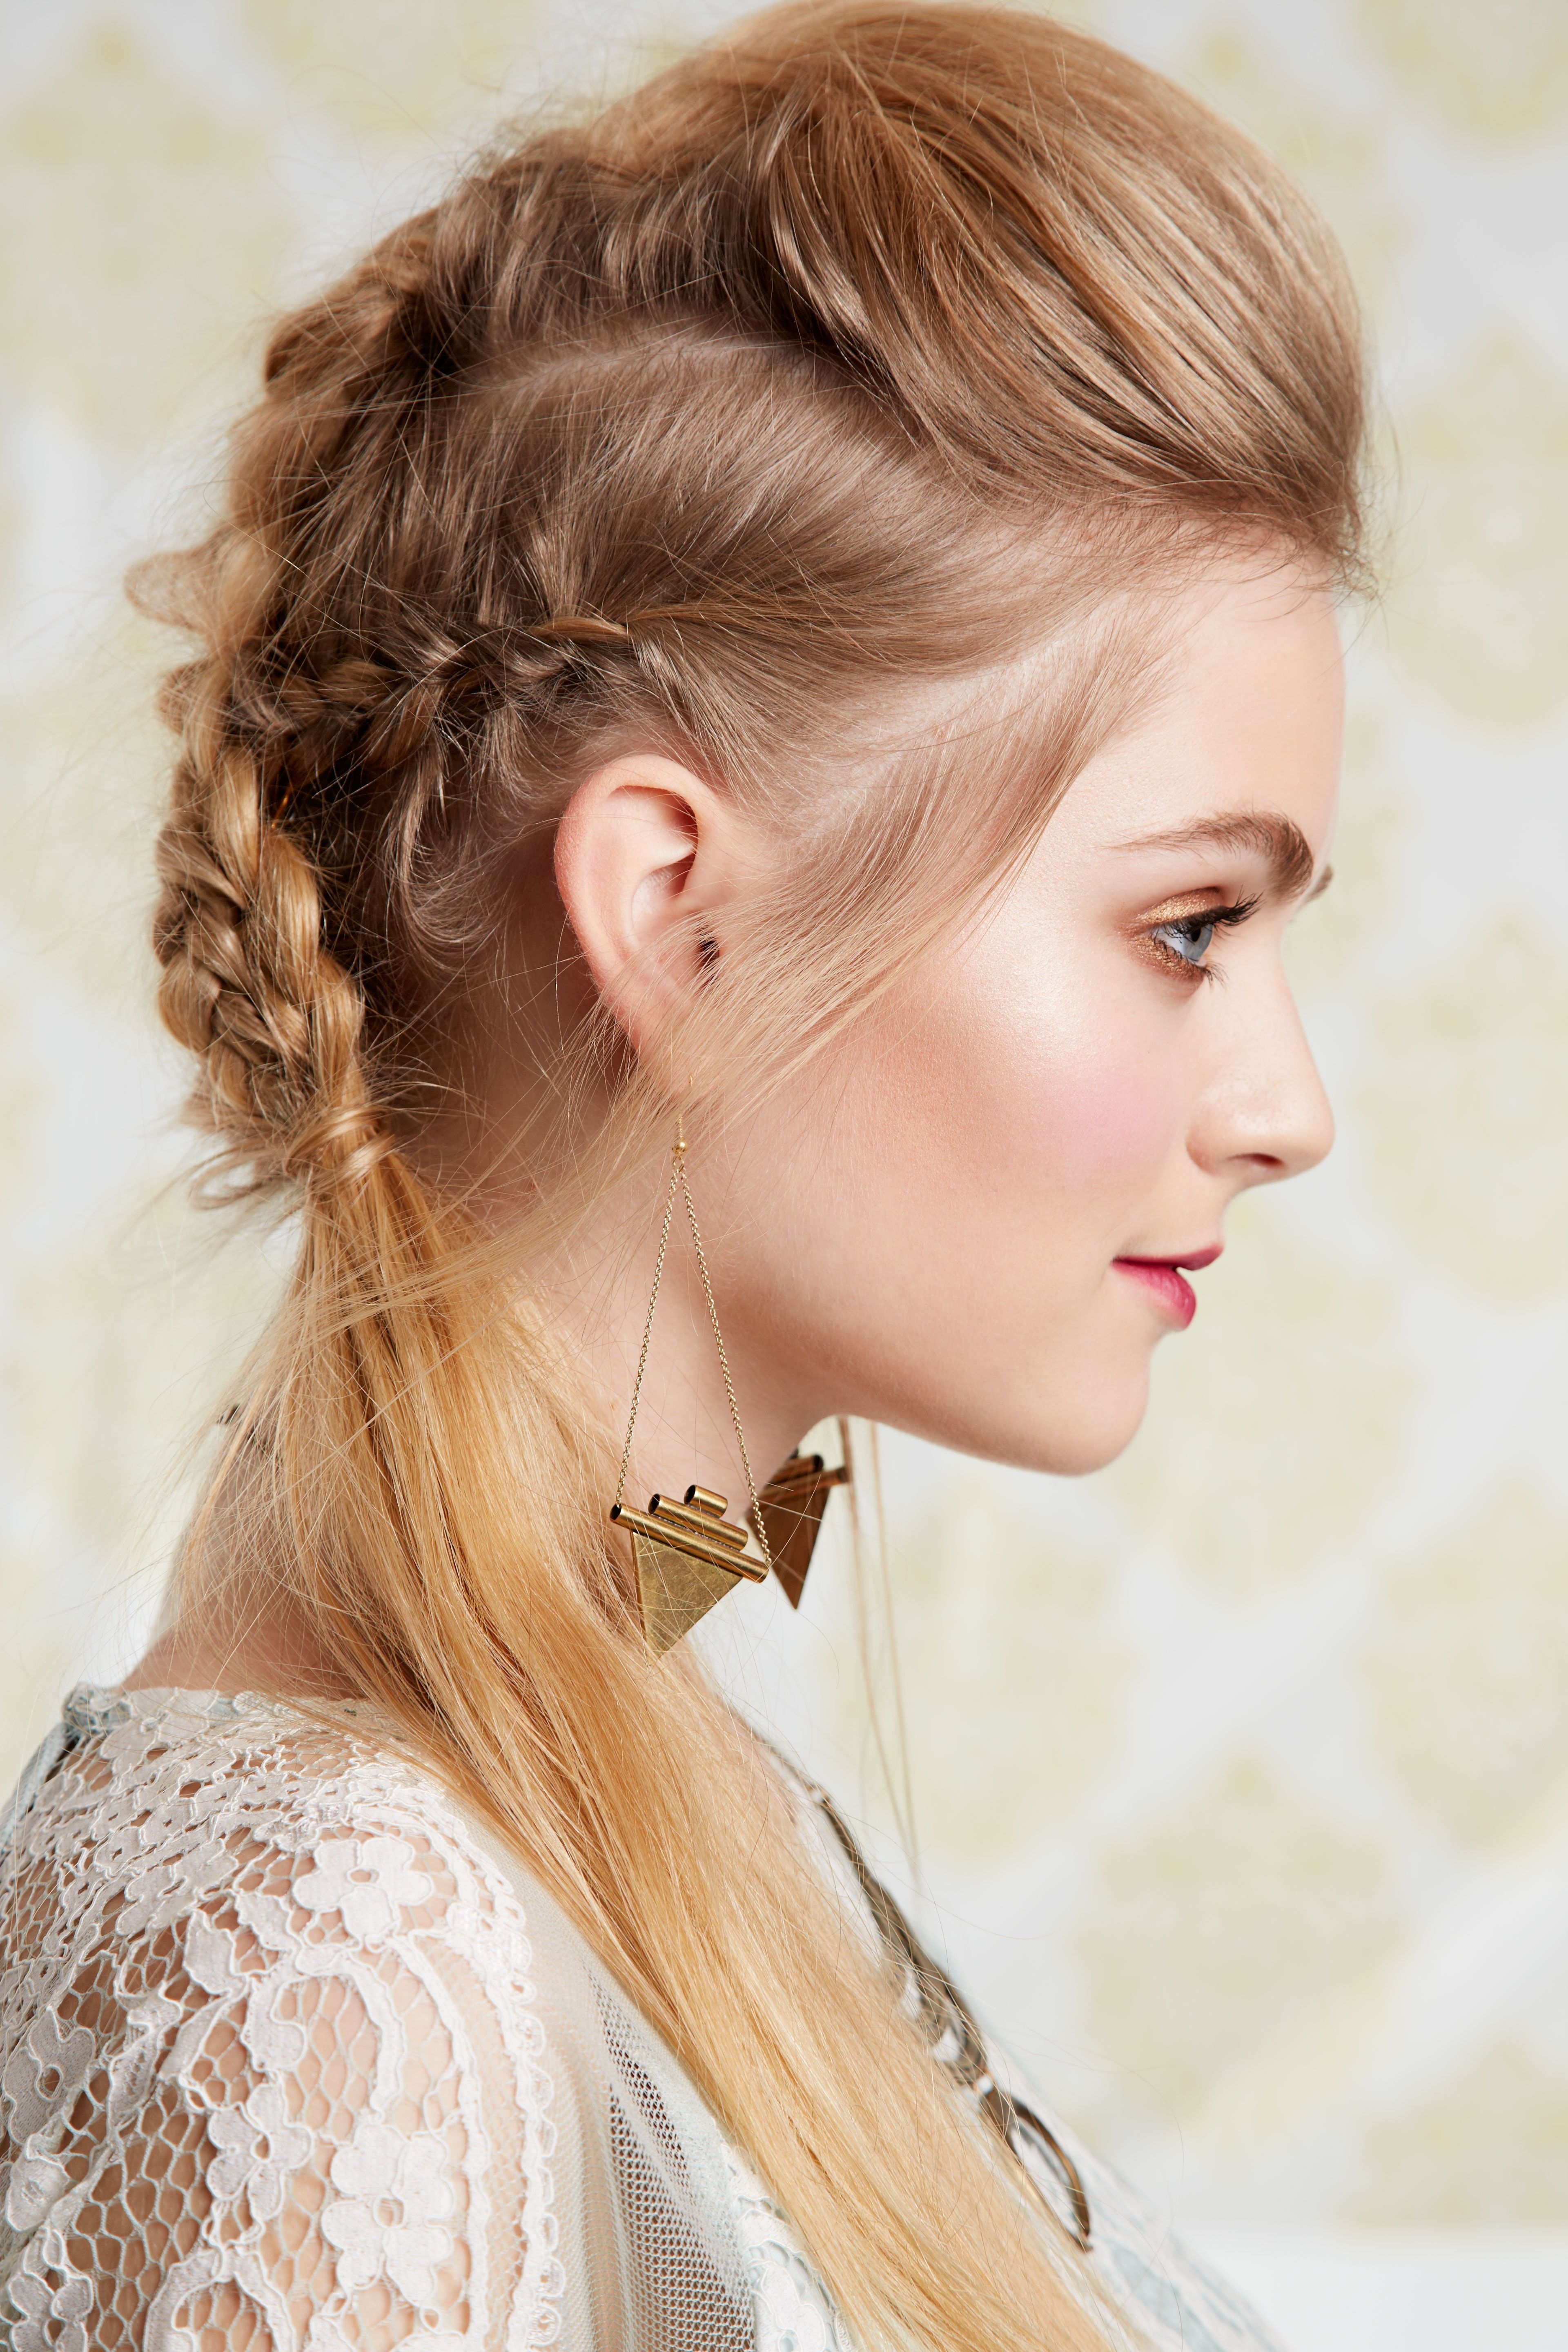 Fashionable Curled Up Messy Ponytail Hairstyles Inside 13 Cute Easy Hairstyles For 2018 – Best Quick Hairstyles For Dirty Hair (View 5 of 20)